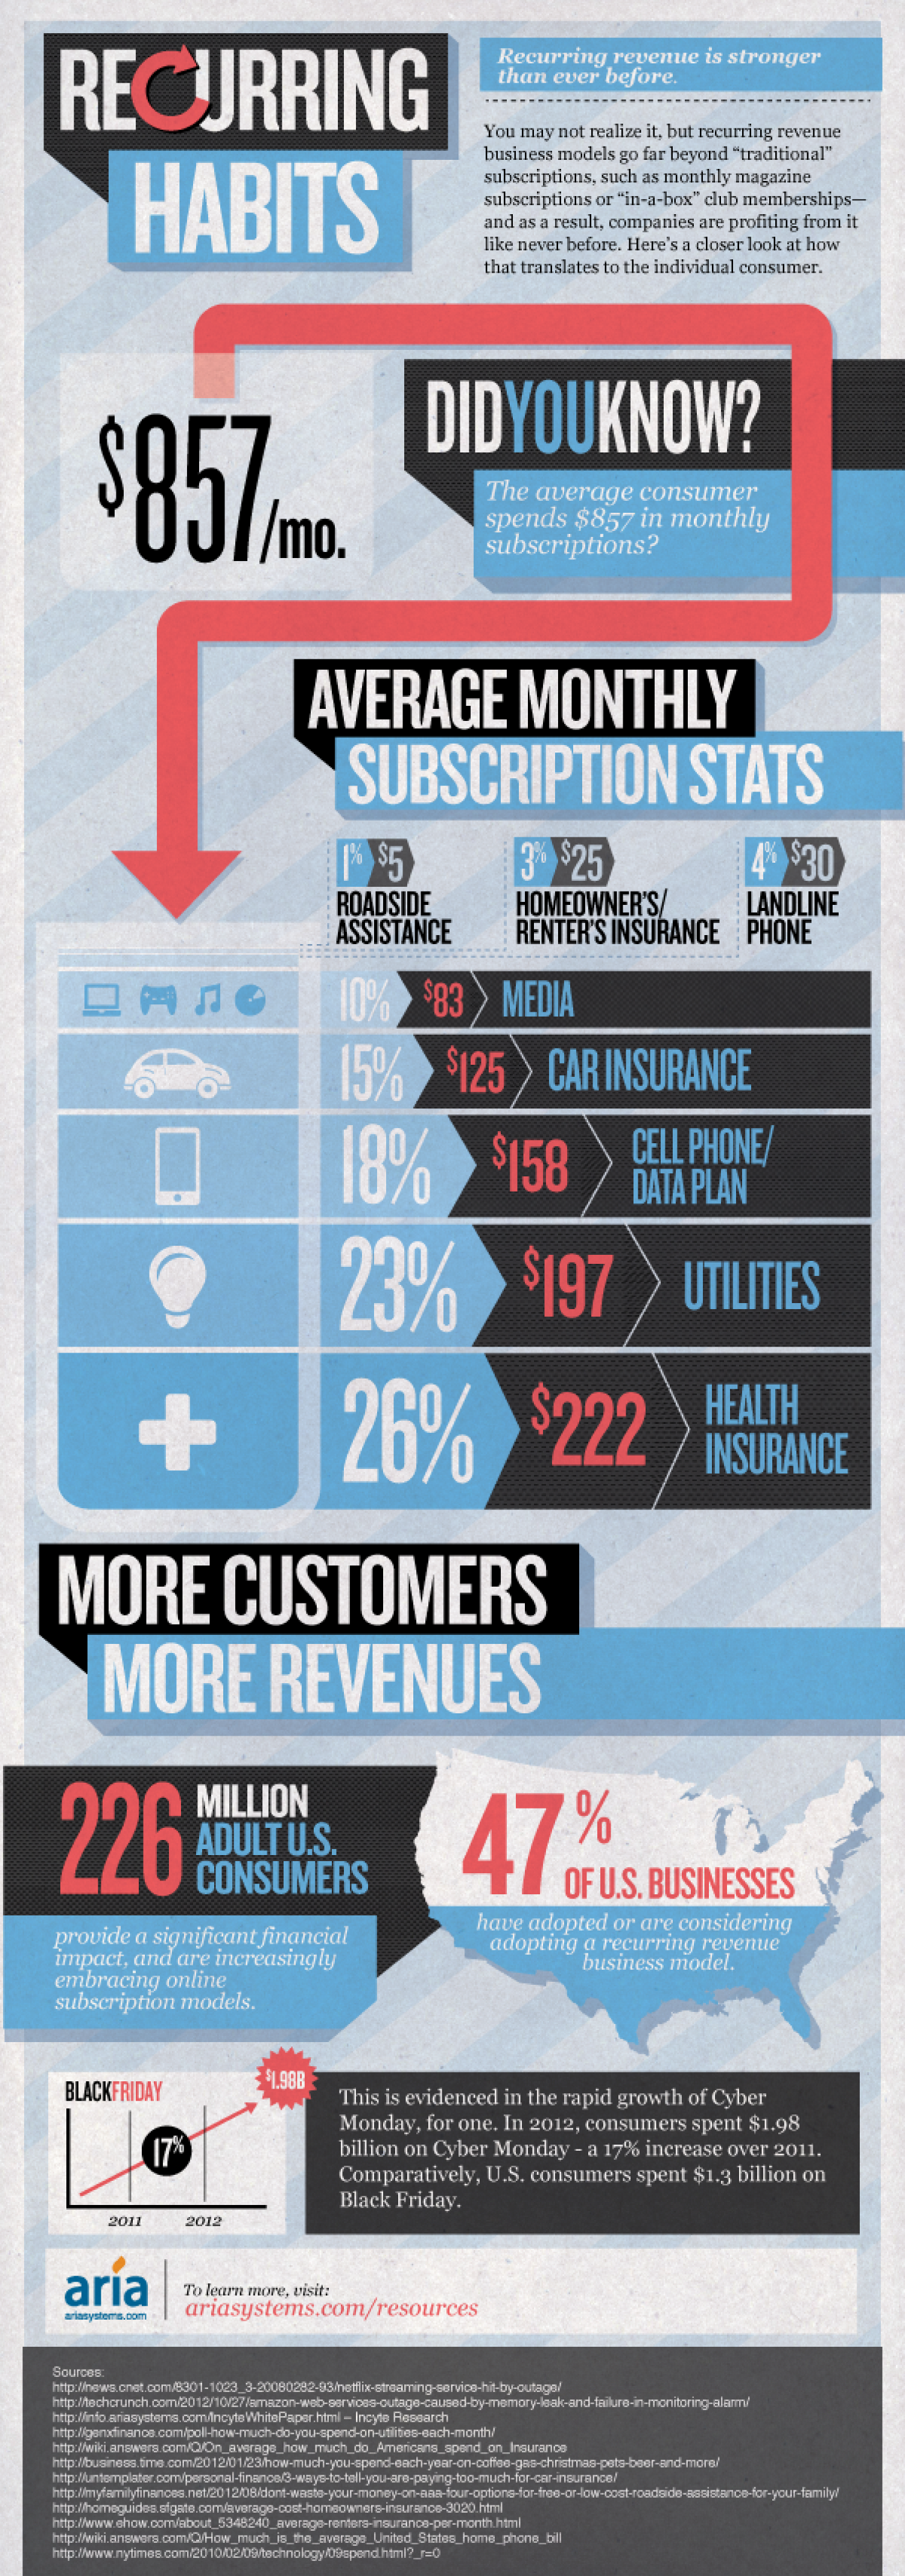 Recurring Habits: Recurring Revenue is Stronger Than Ever Before Infographic